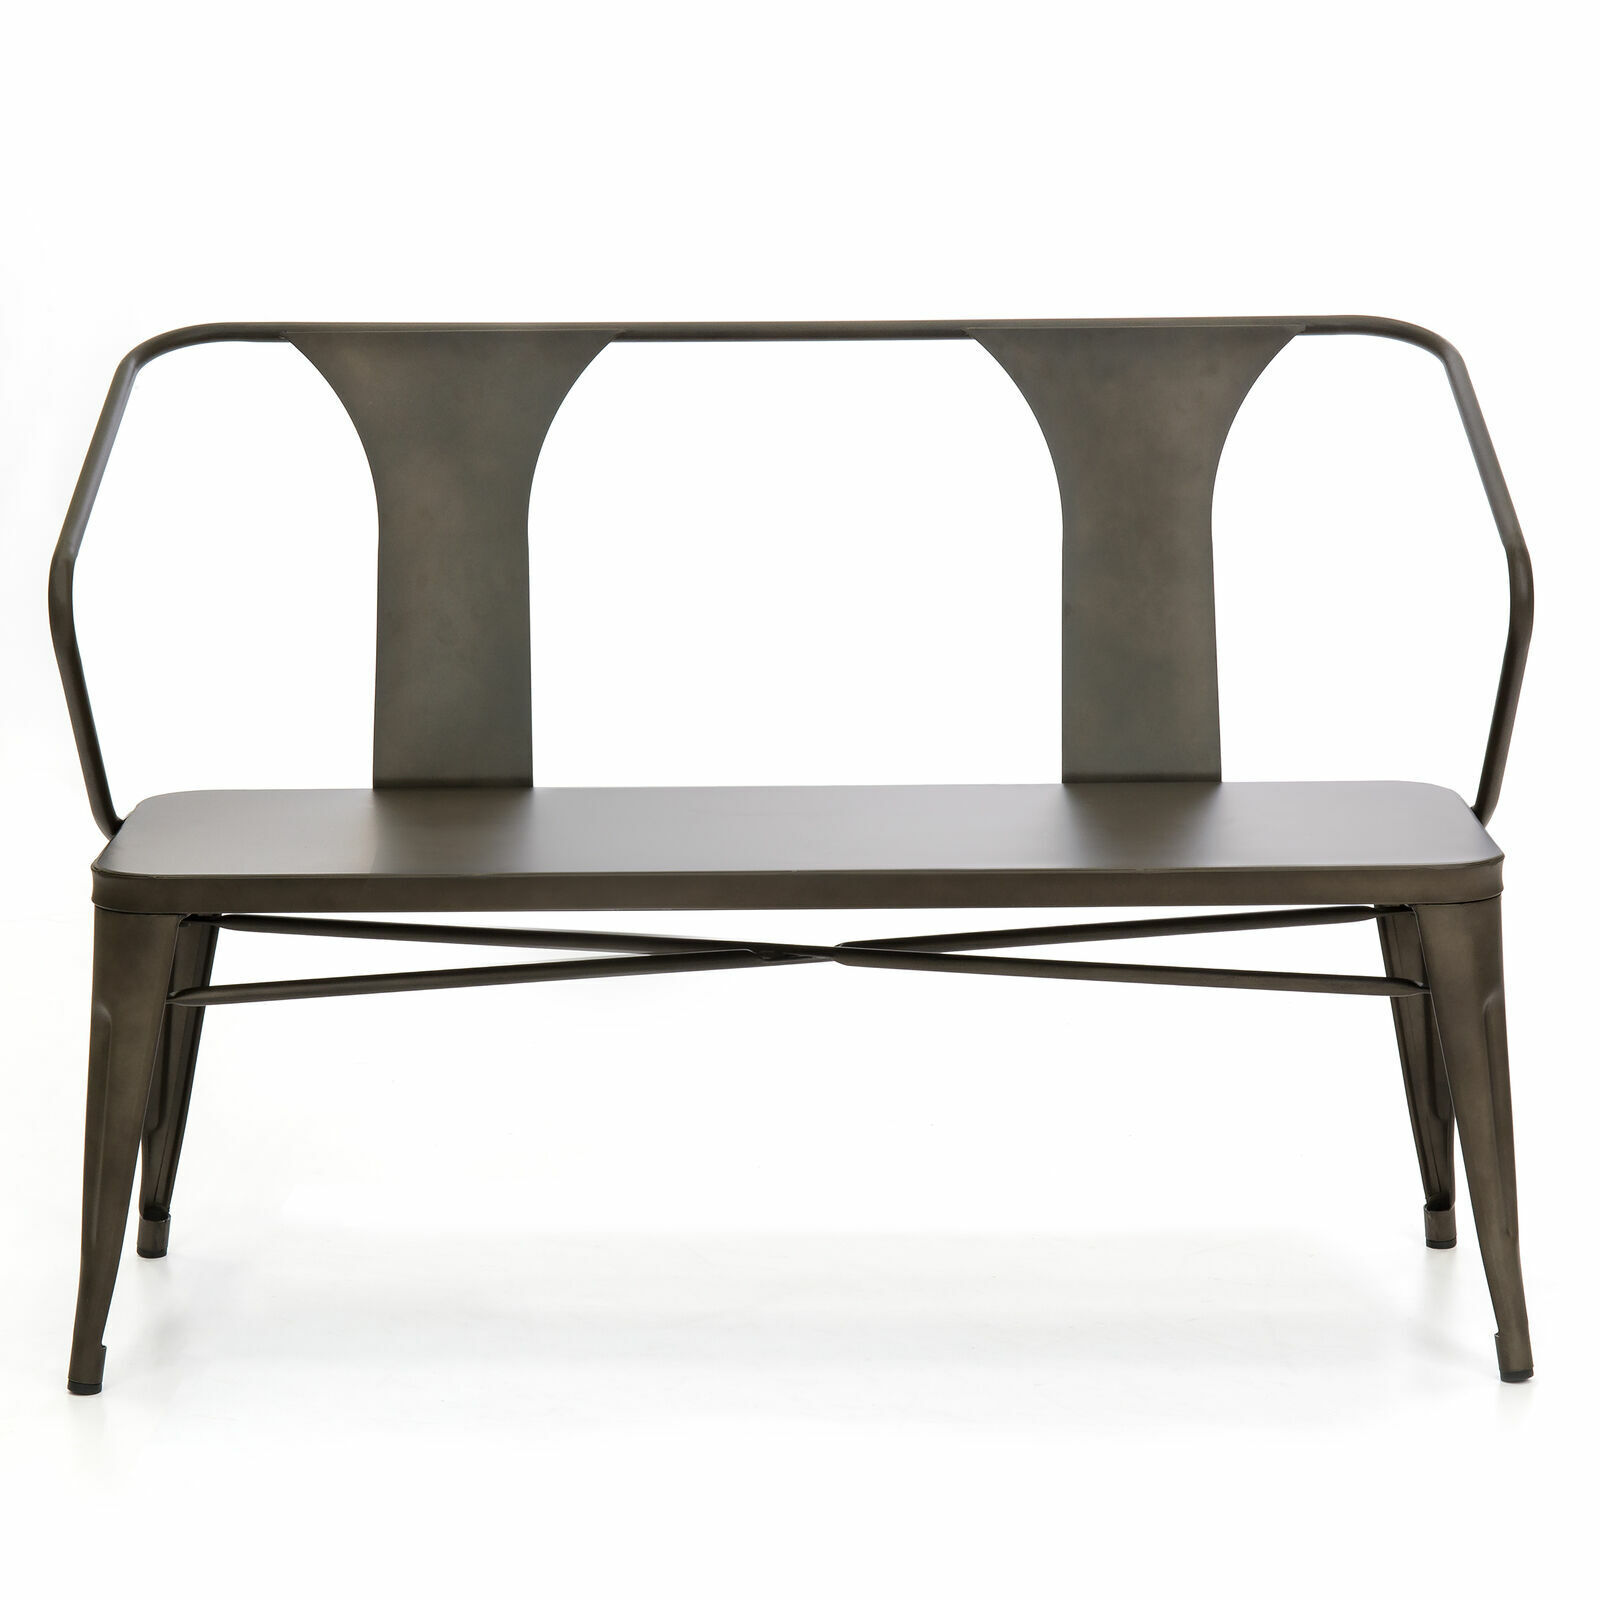 2 Person Industrial Vintage Style Metal Bench Loveseat Outdo